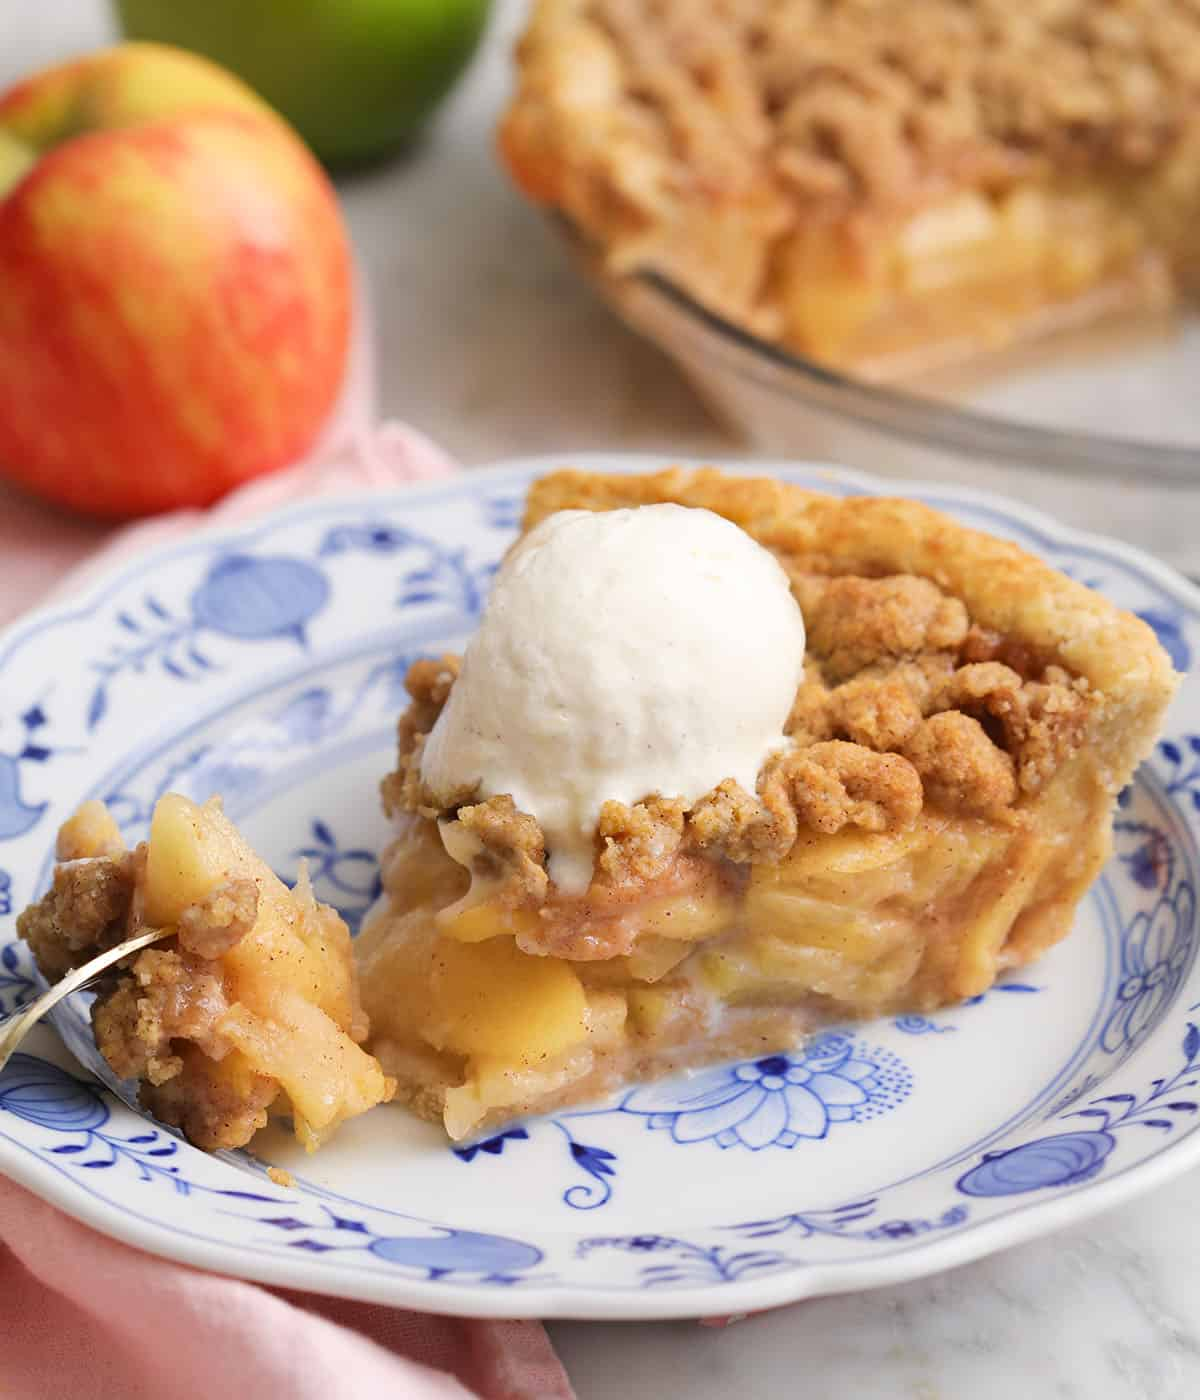 Ice cream melting into a piece of warm apple crumble pie.